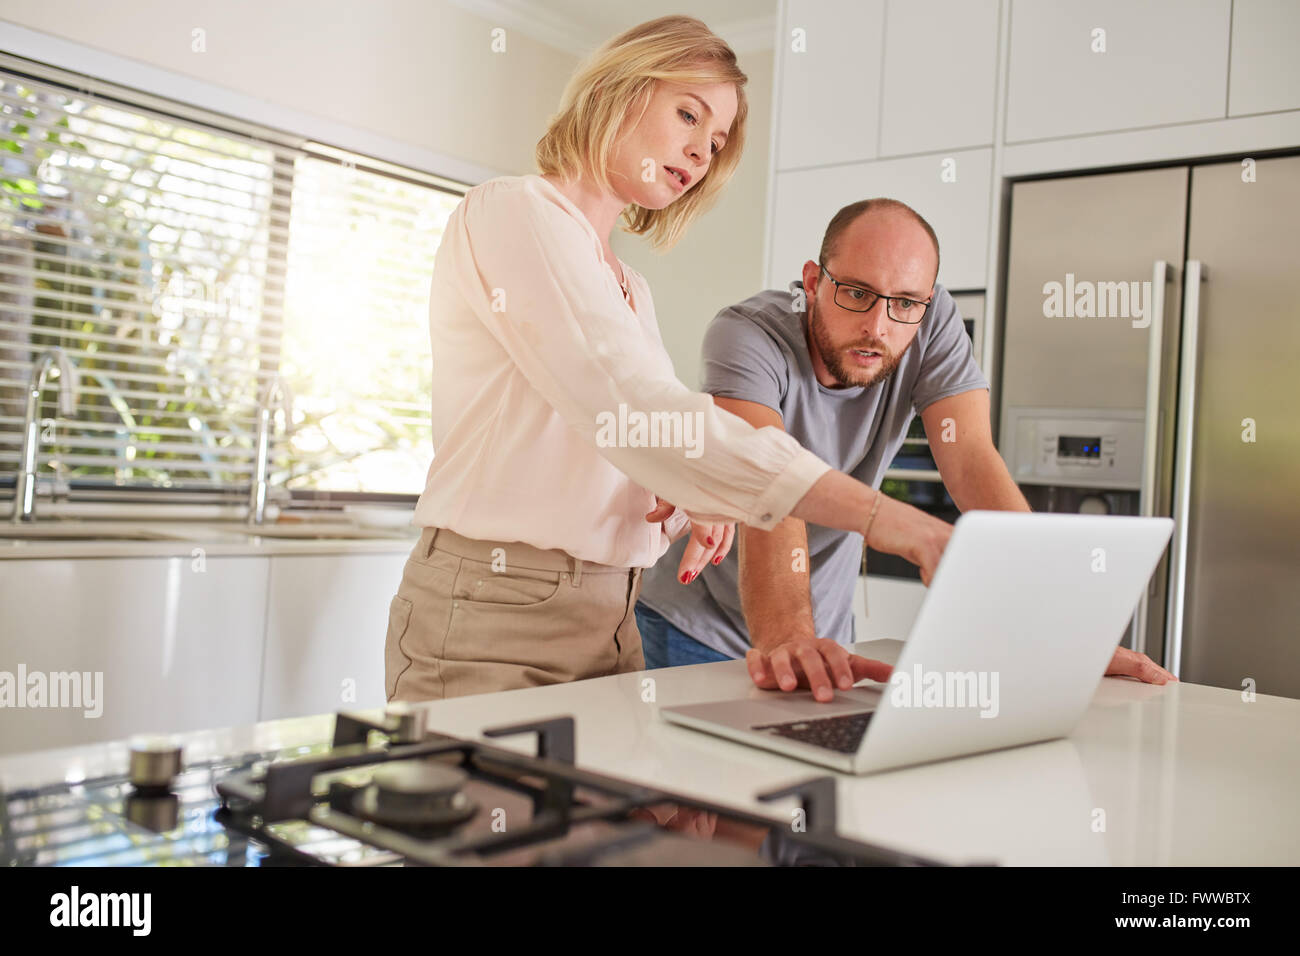 Portrait of mature couple working together on a laptop in the kitchen. Couple standing by the kitchen counter, with - Stock Image